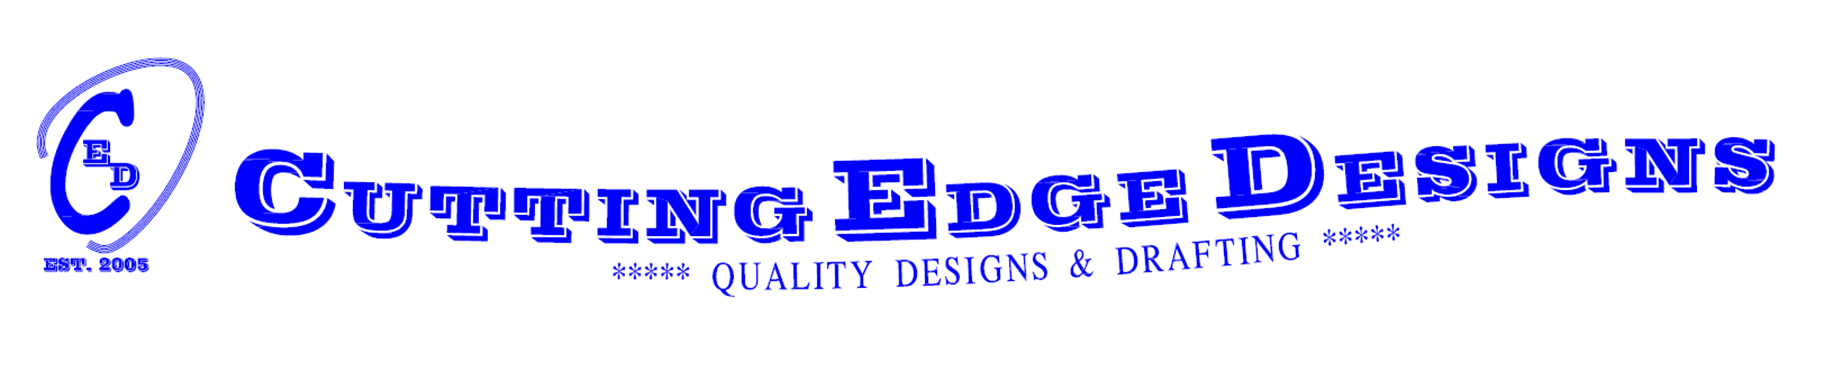 Cutting Edge Designs